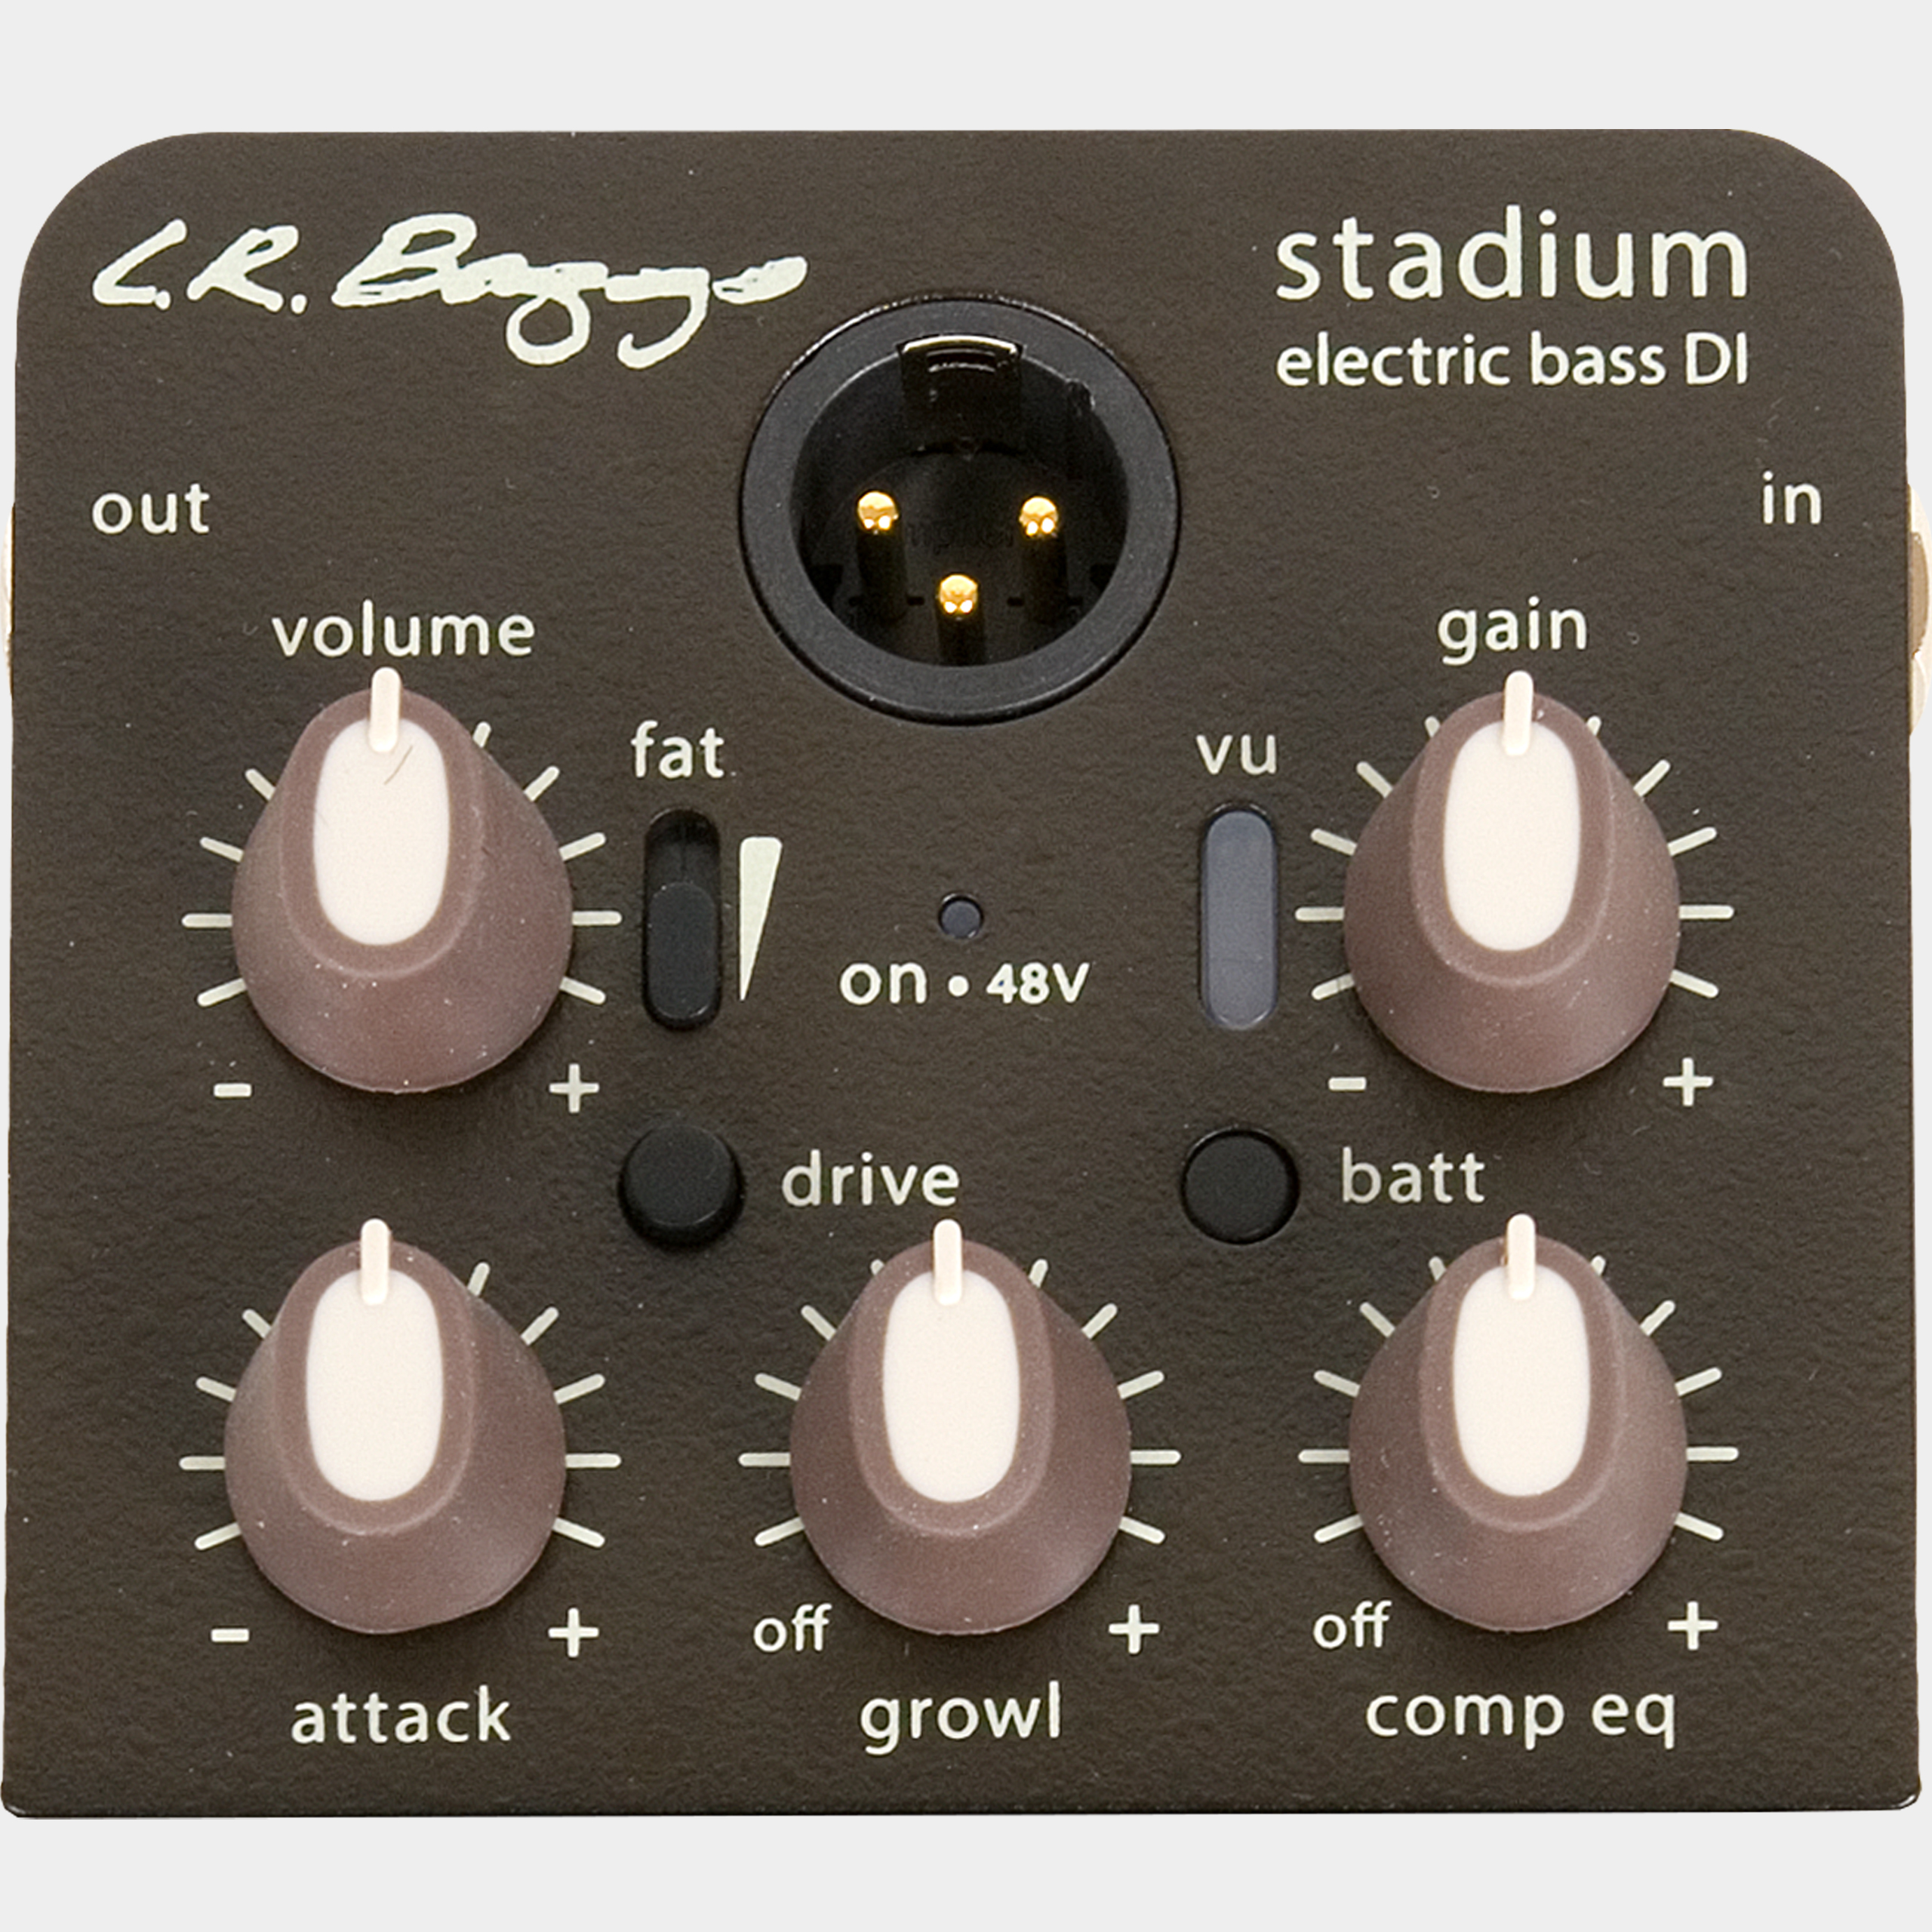 L.R. BAGGS Stadium Electric Bass DI Panel